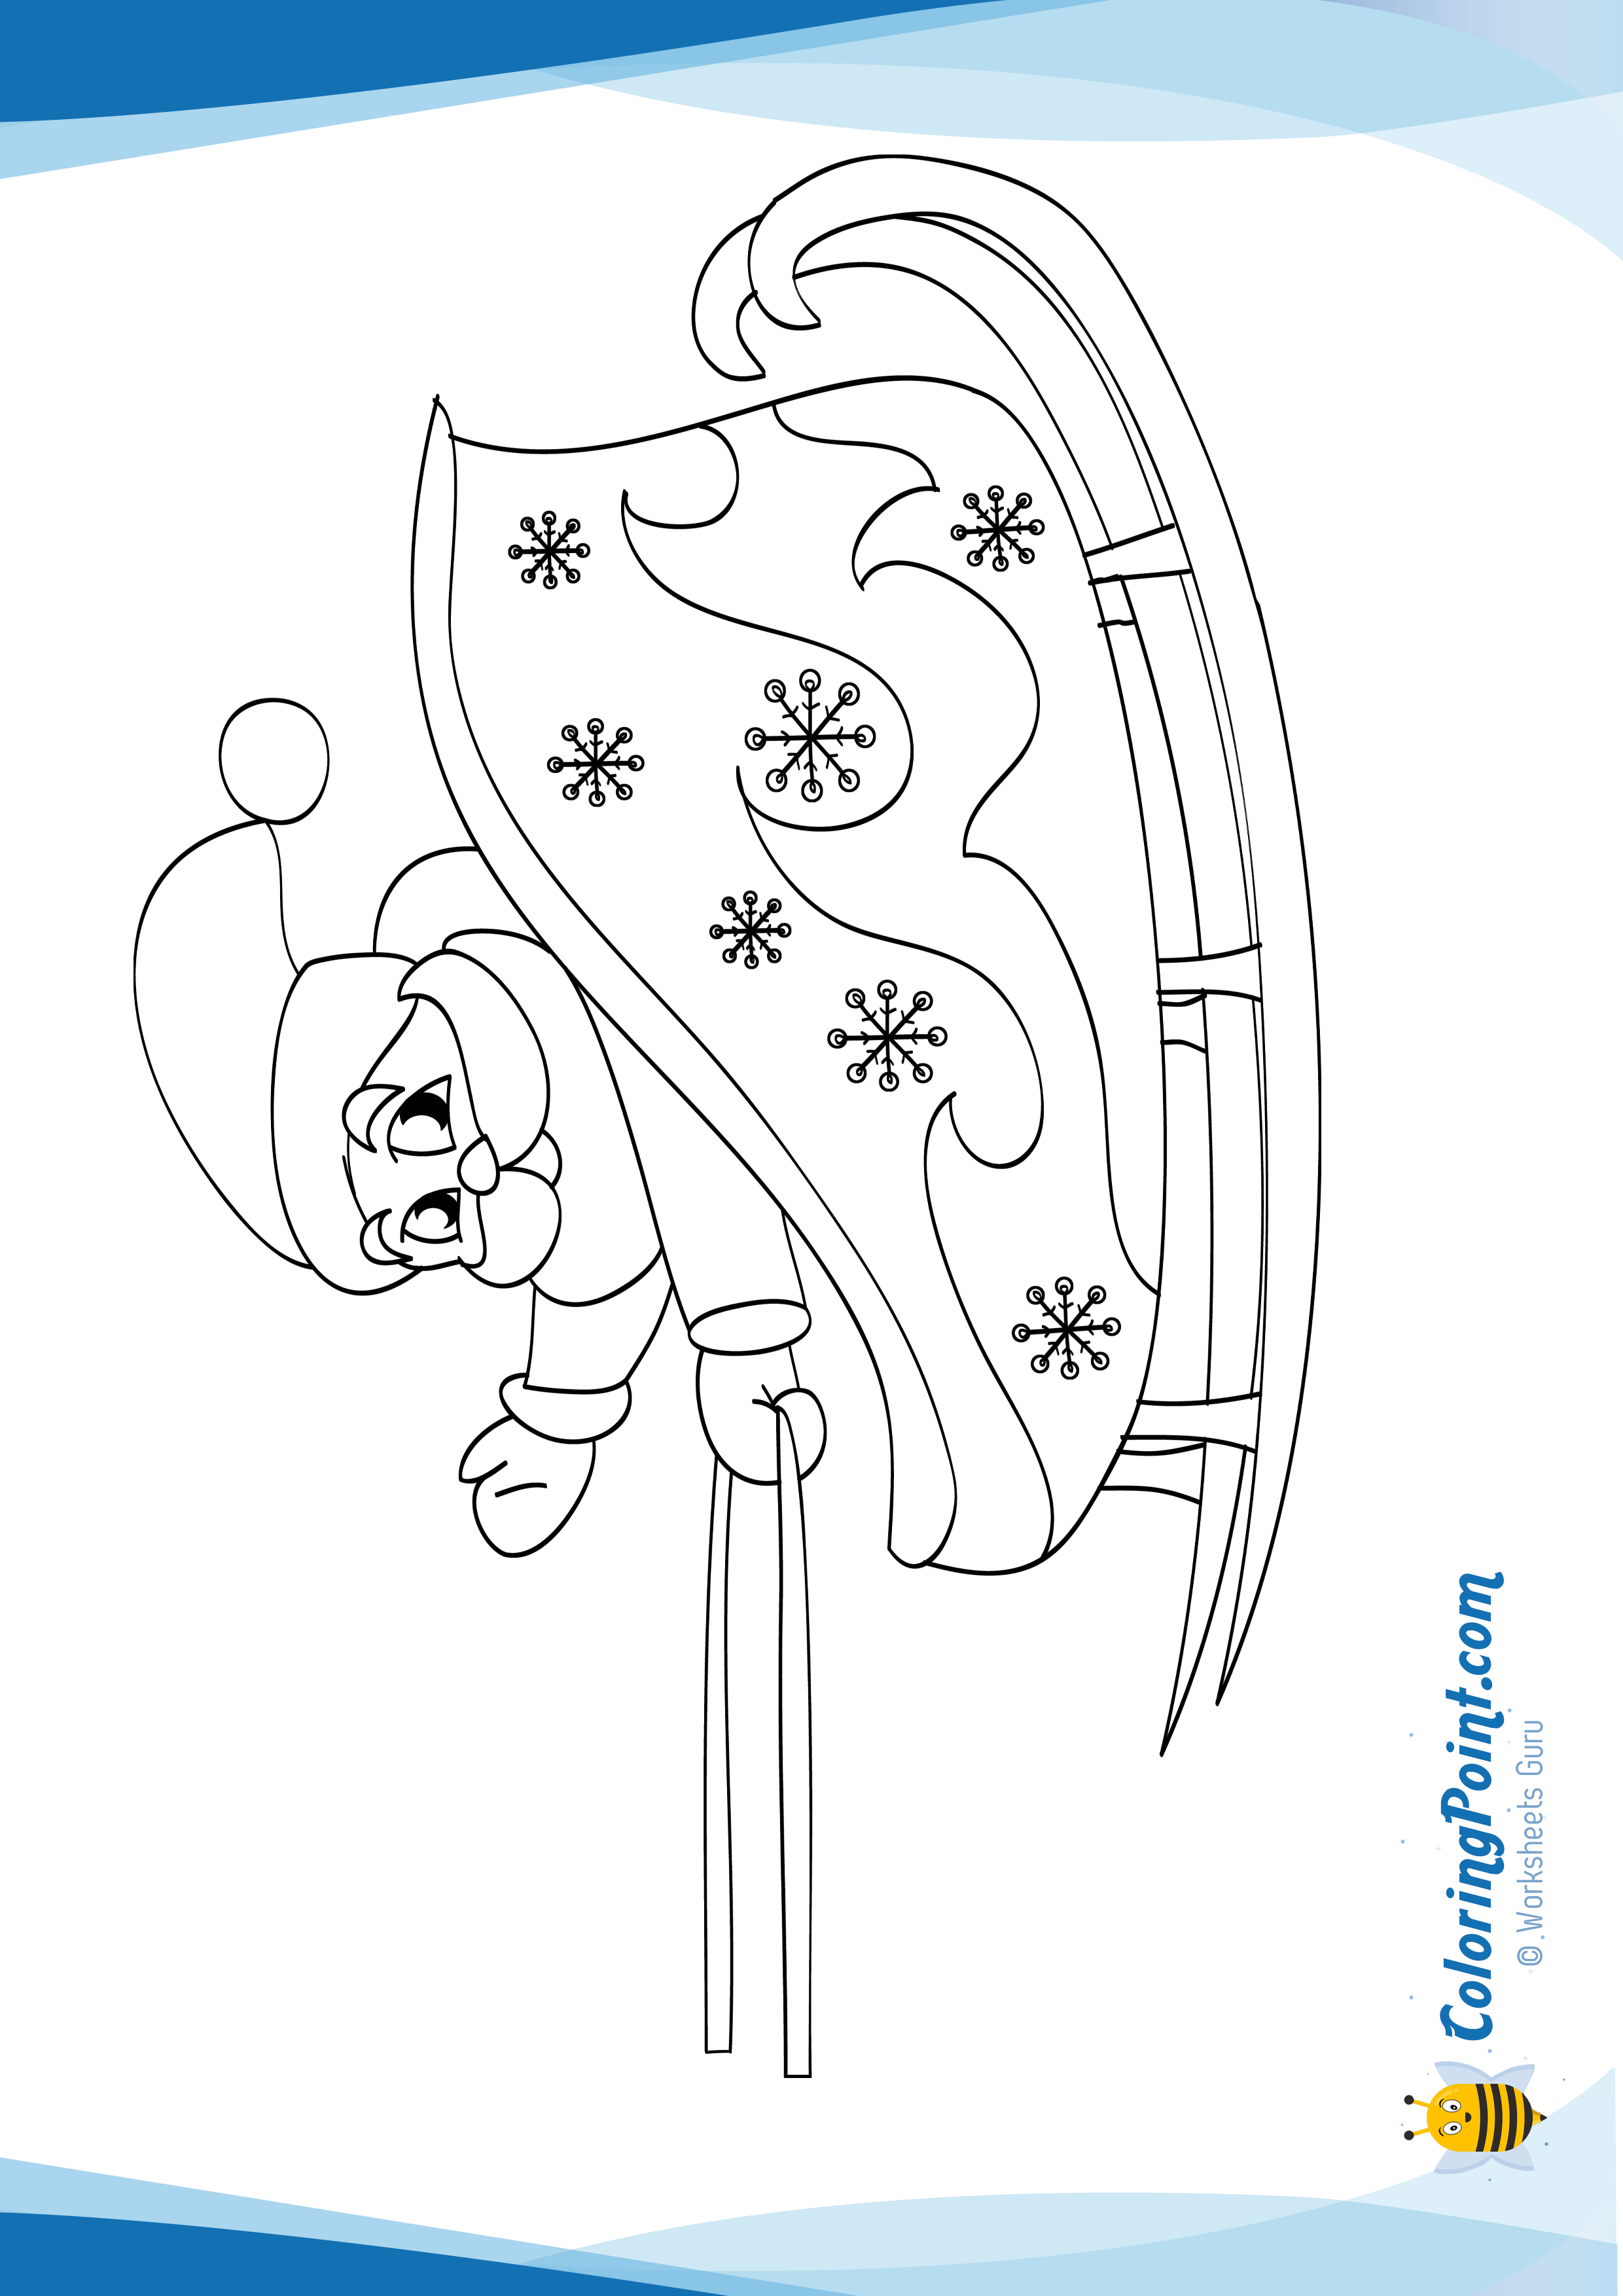 Santa Sled Coloring Page With Claus On His Sleigh There Is A New